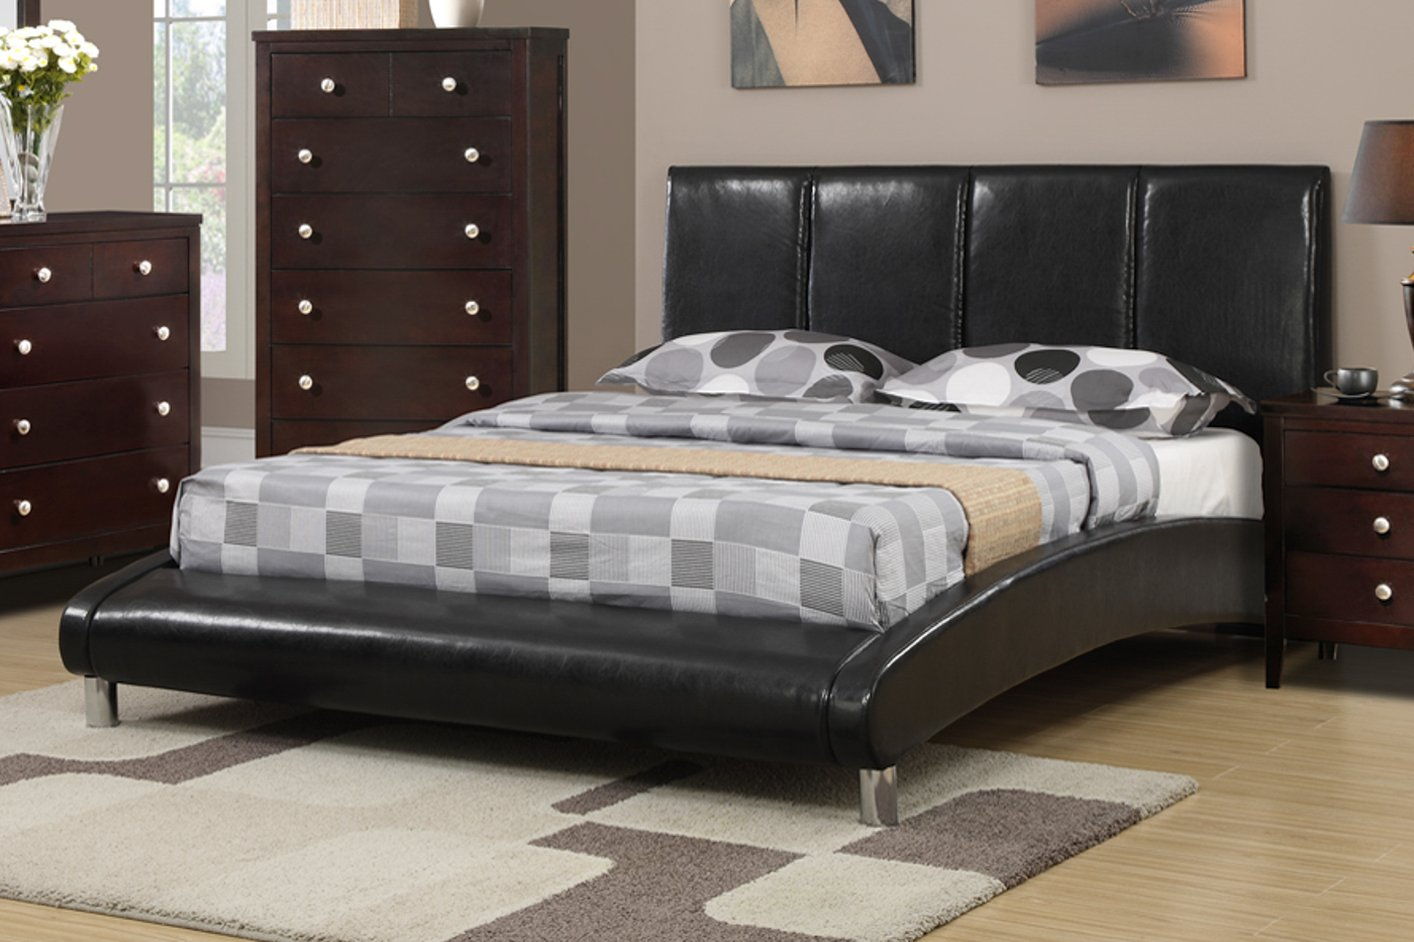 Poundex F9240q Black Queen Size Leather Bed Steal A Sofa